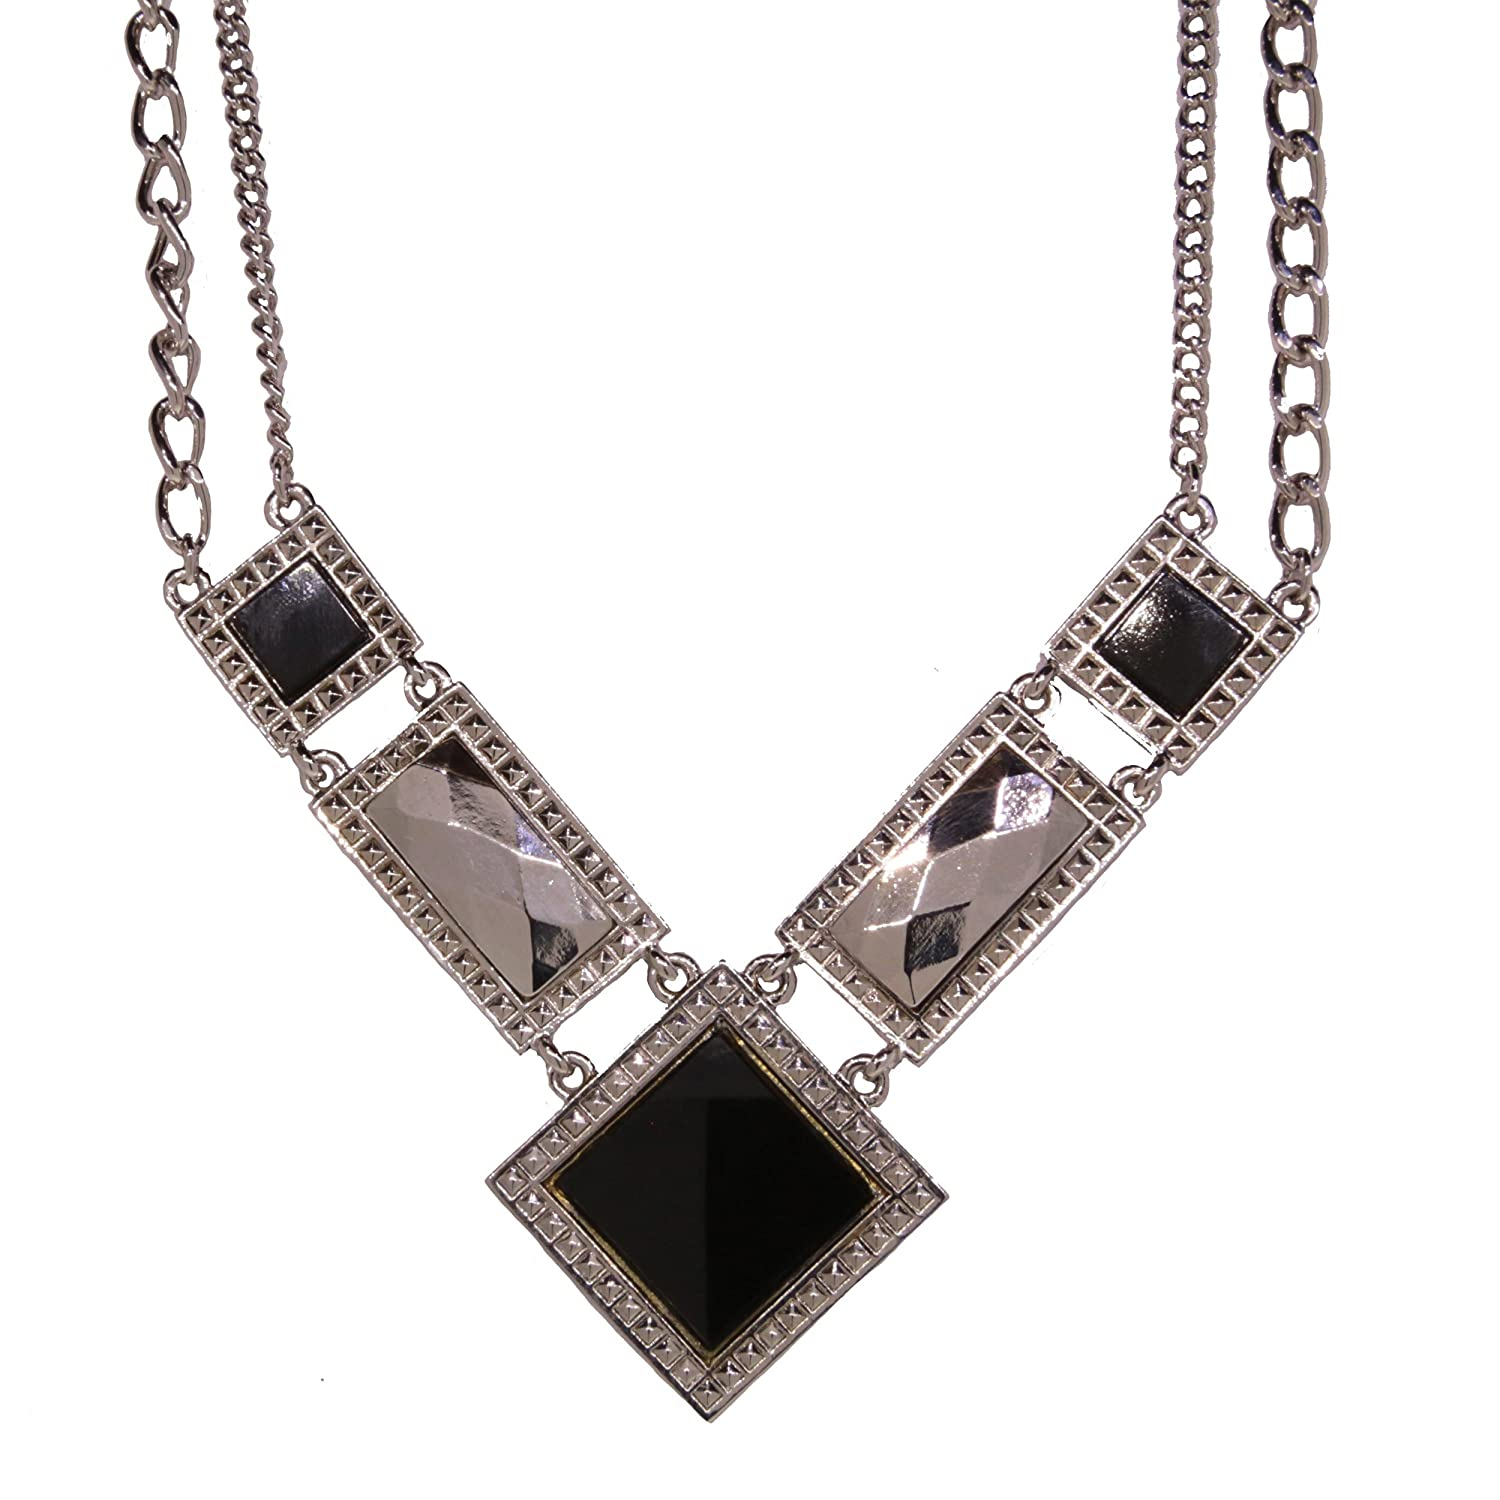 1920s Jewelry Styles History 1928 Jewelry Silver Tone Semi Precious Square Chain Necklace 16 Adj. $95.00 AT vintagedancer.com